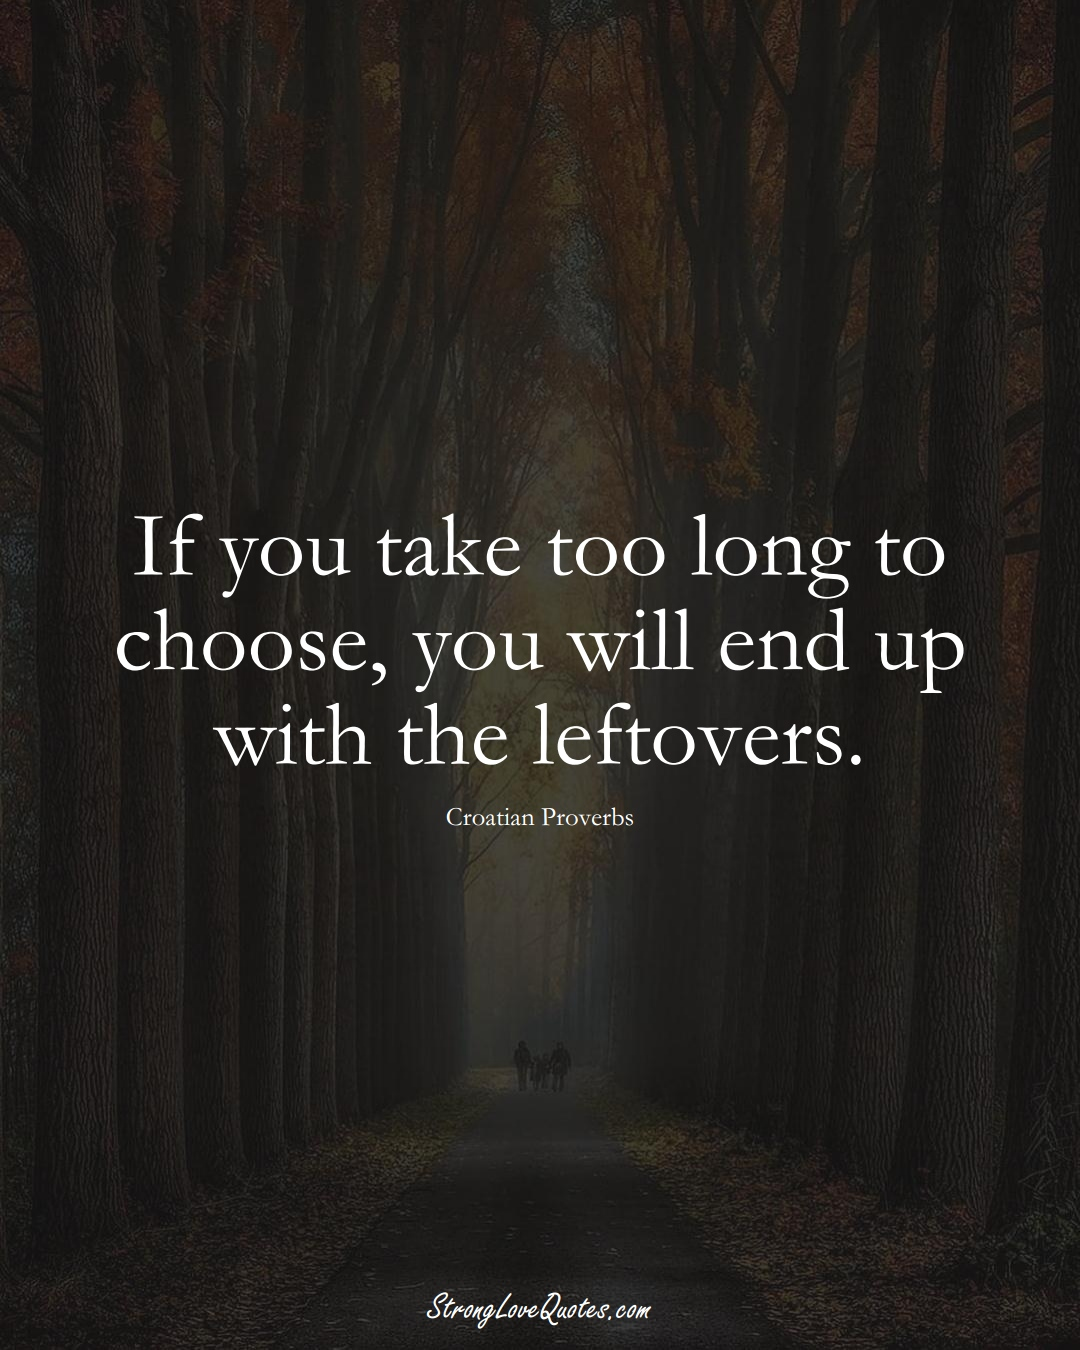 If you take too long to choose, you will end up with the leftovers. (Croatian Sayings);  #EuropeanSayings